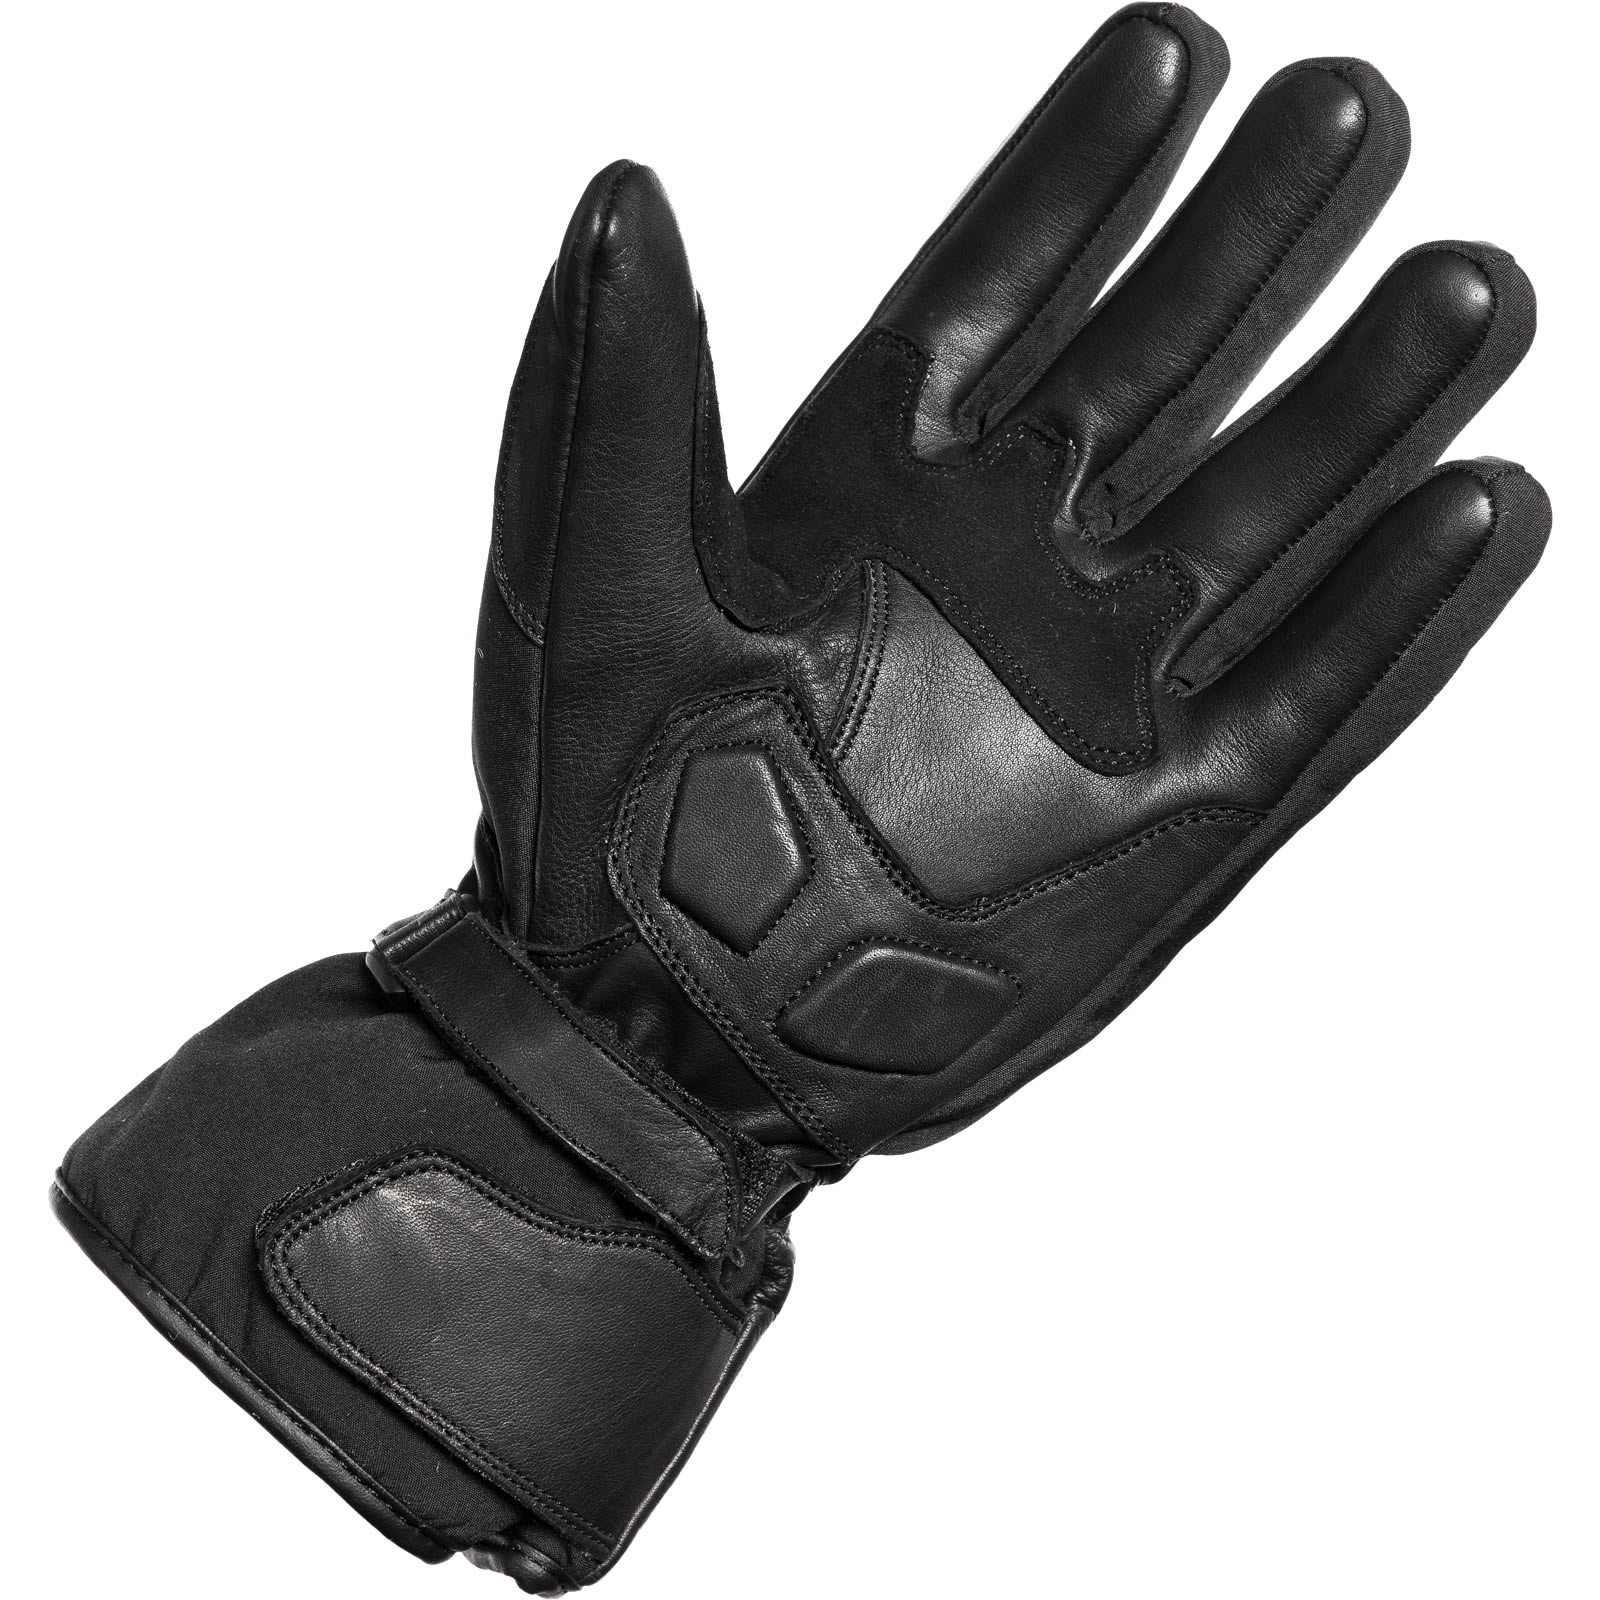 Agrius-Slate-Leather-Motorcycle-Motorbike-Waterproof-All-Season-Bike-Gloves